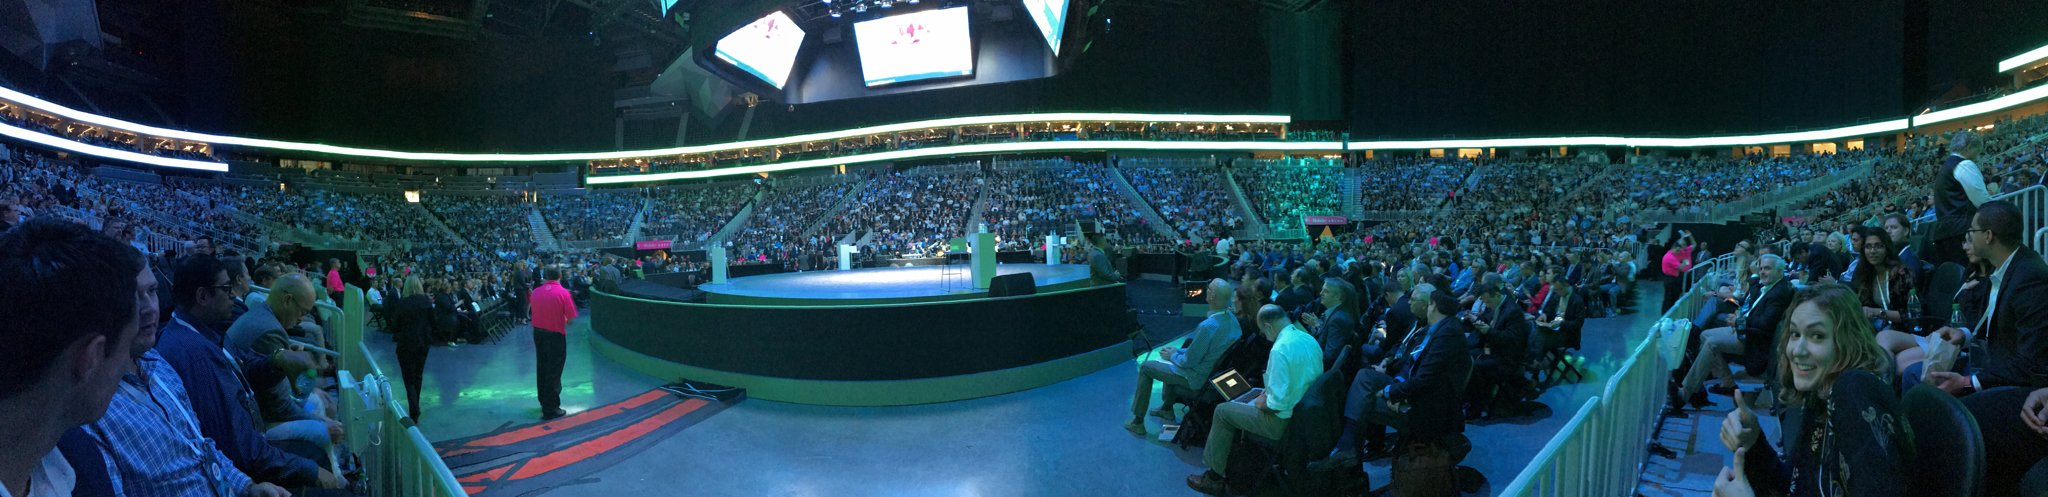 The 360° view from my seat at #ibmwow with @erikariehle https://t.co/ABySBUpGoL